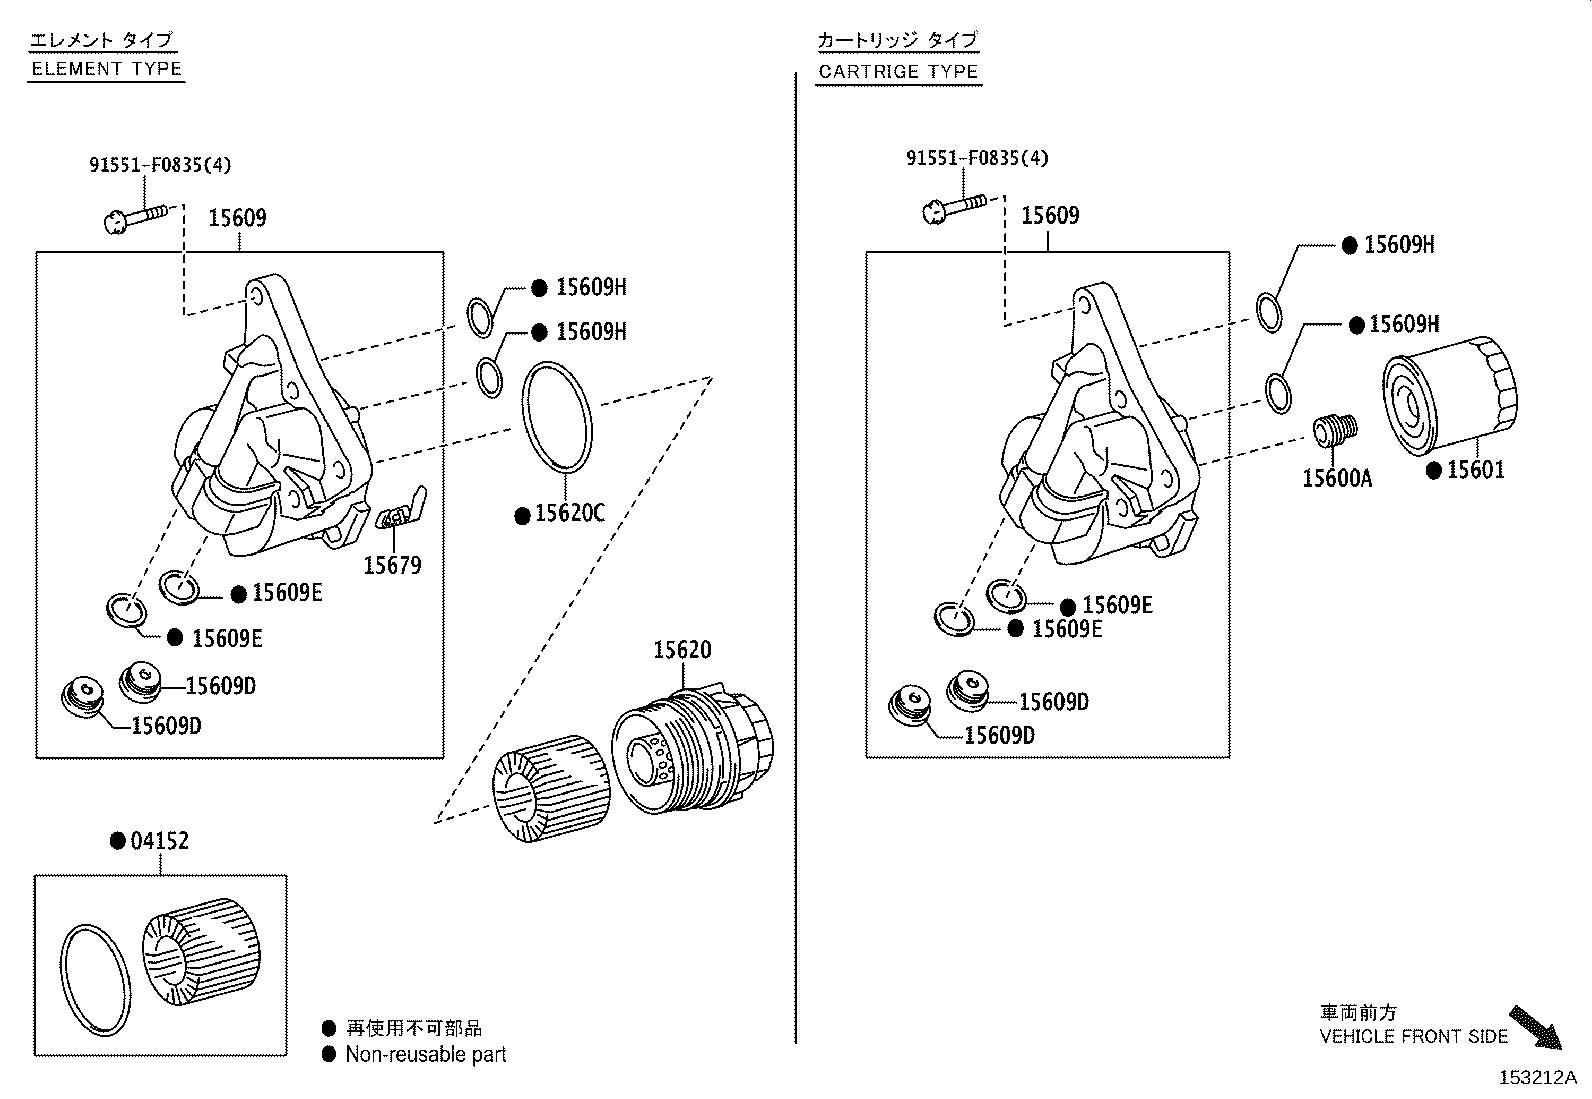 Toyota Prius Bracket sub-assembly, oil filter. Element